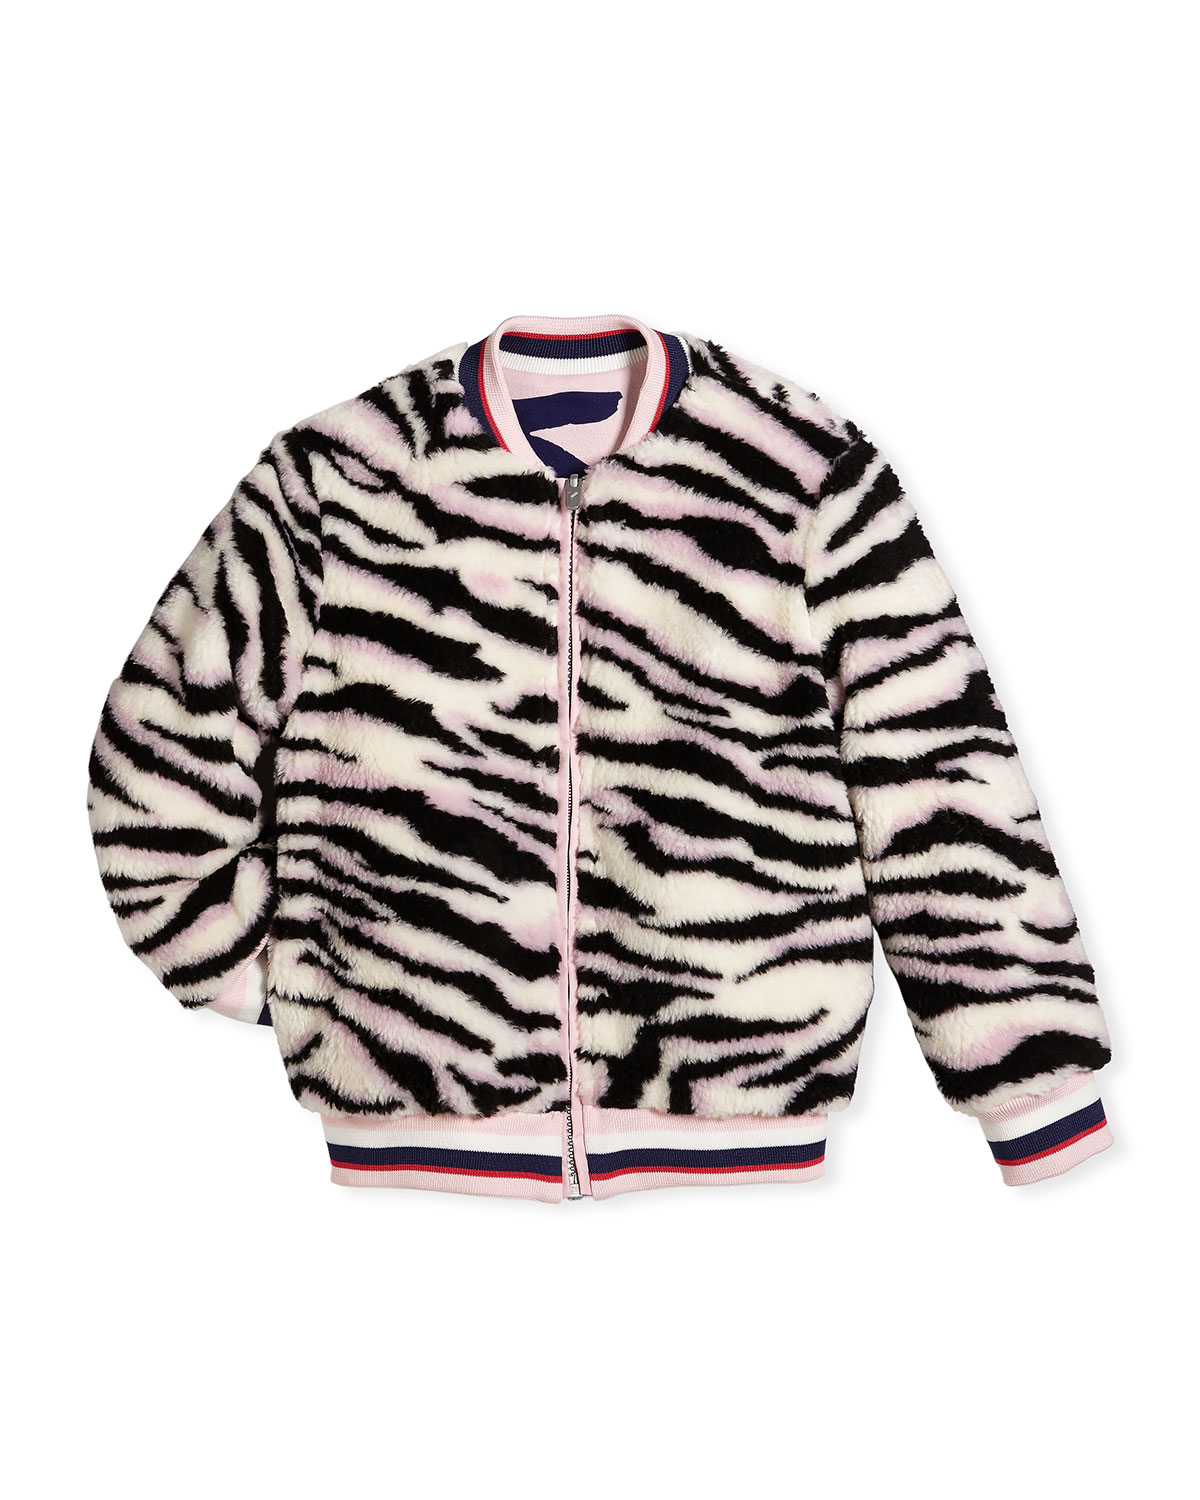 Reversible Faux-Fur Zebra Print Jacket, Size 4-6